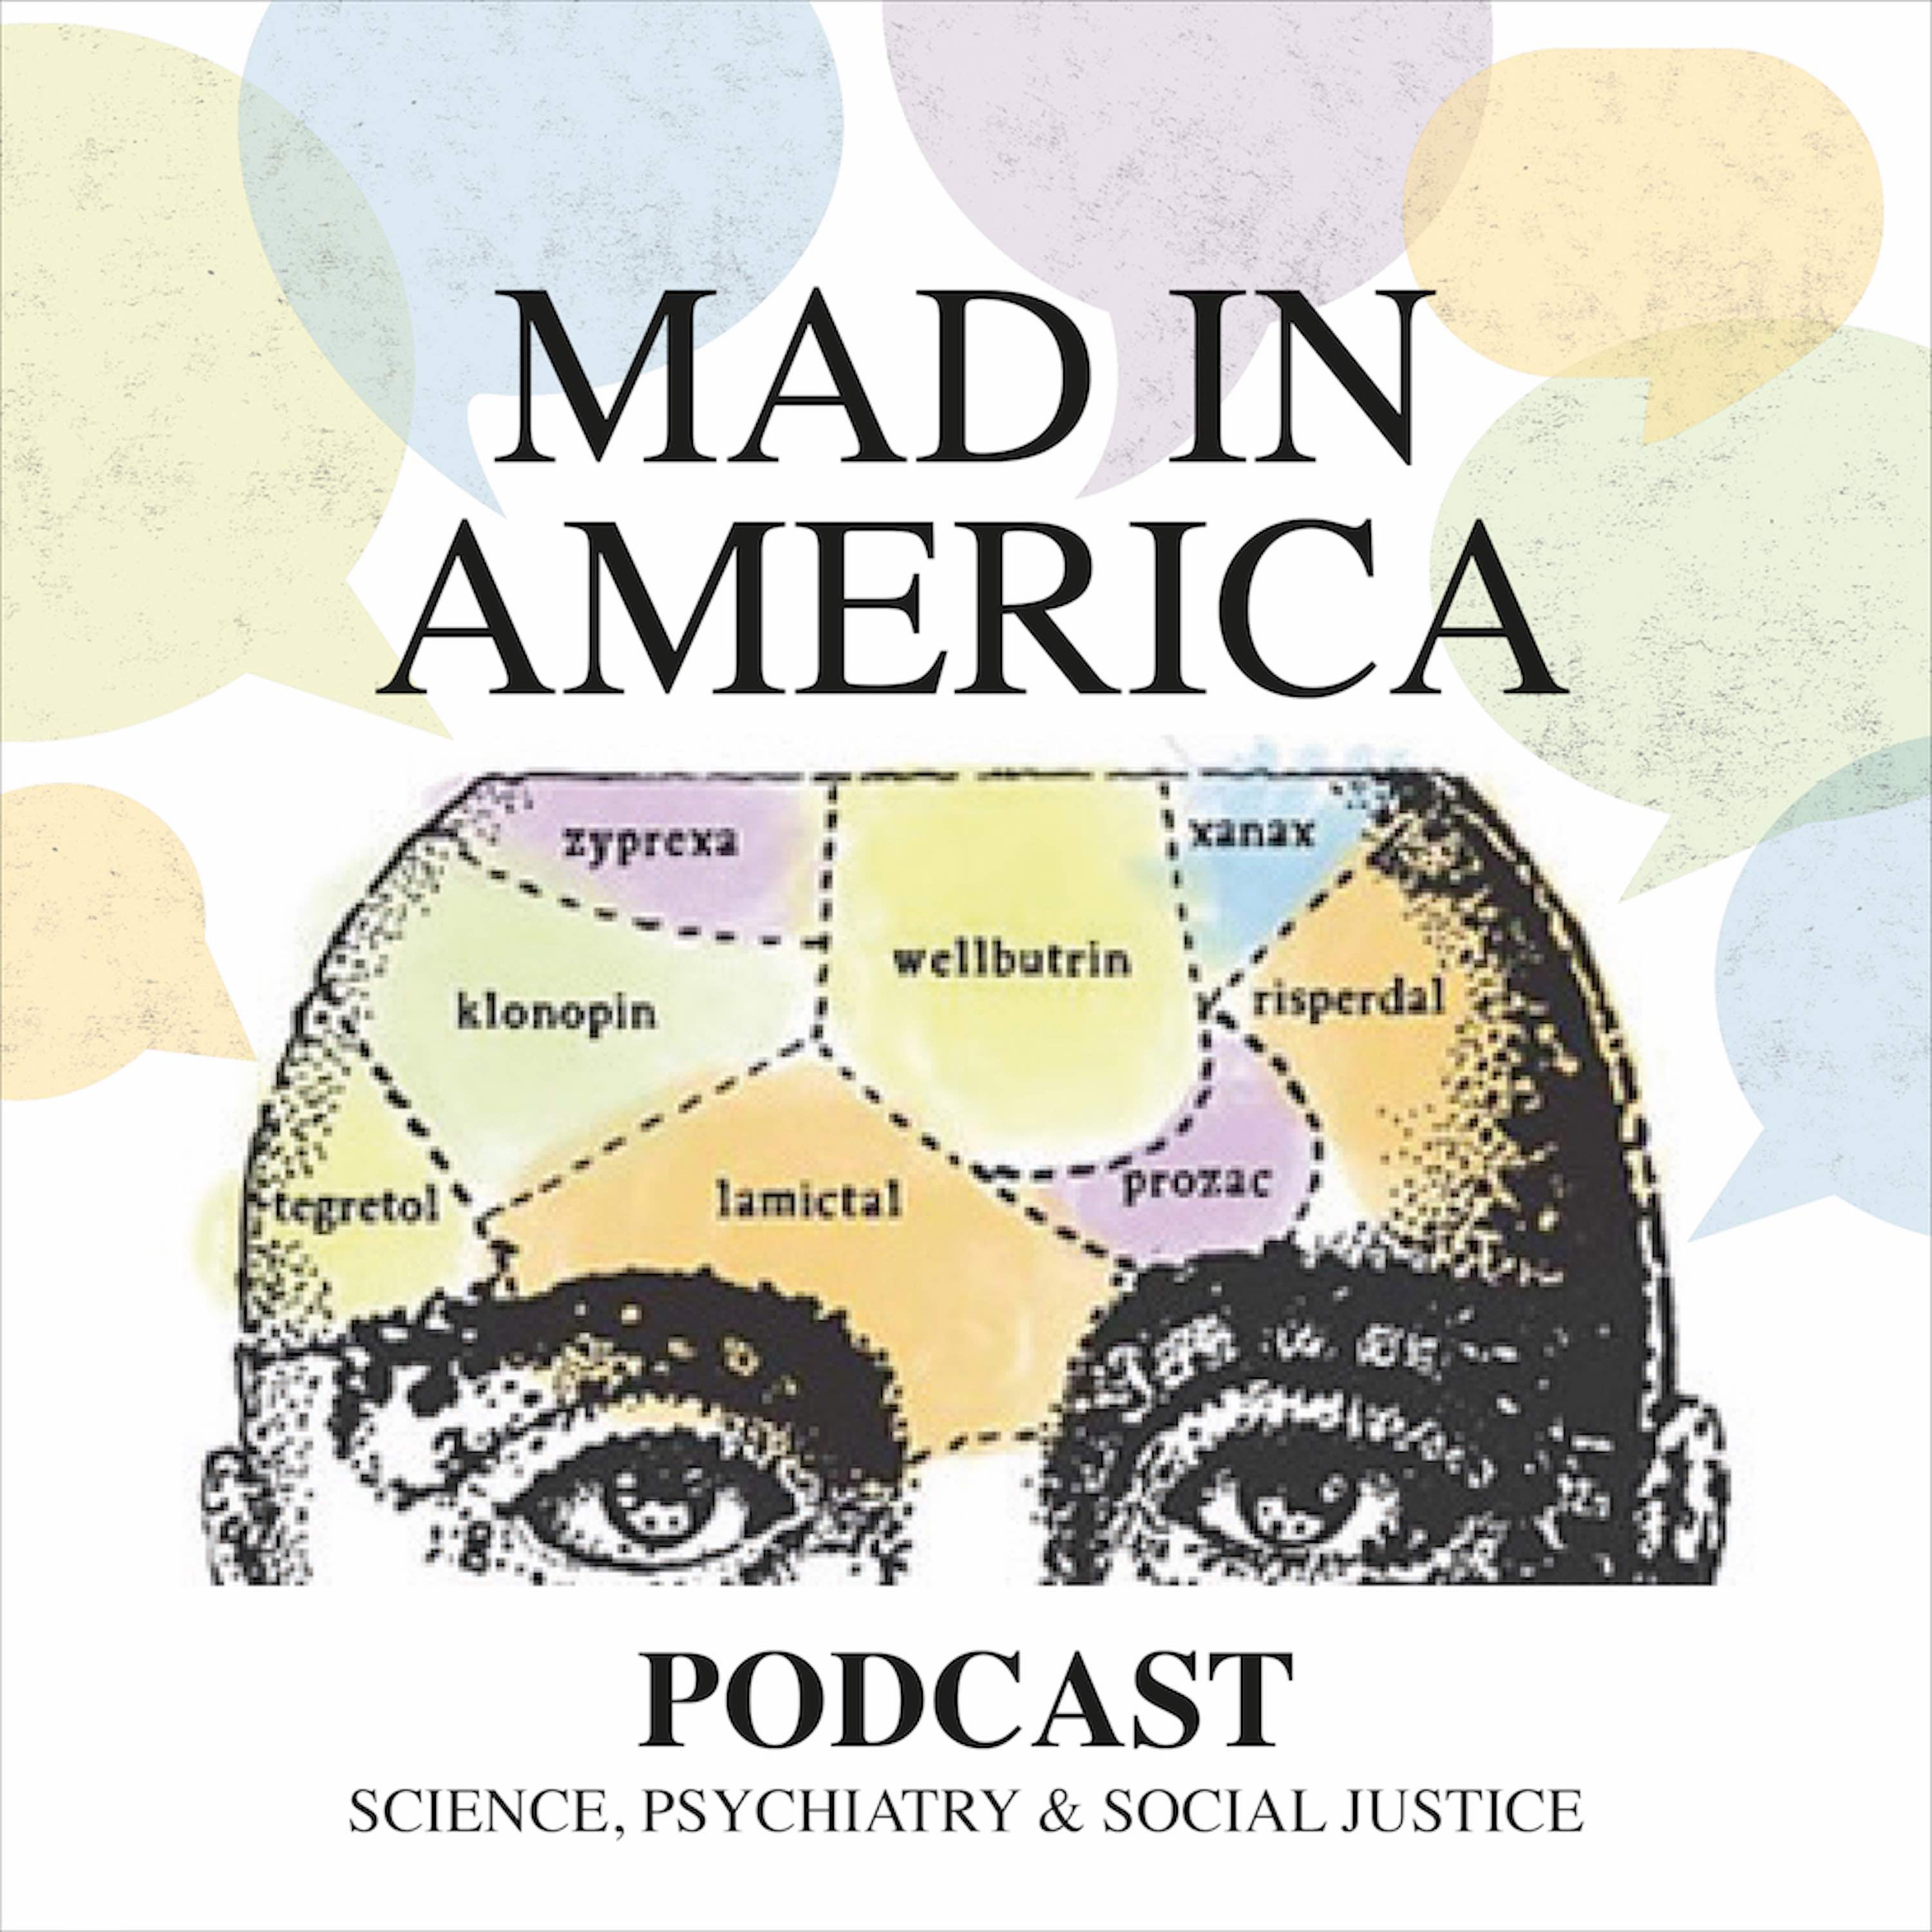 Mad in America: Rethinking Mental Health - Joanna Moncrieff - Challenging the New Hype About Antidepressants